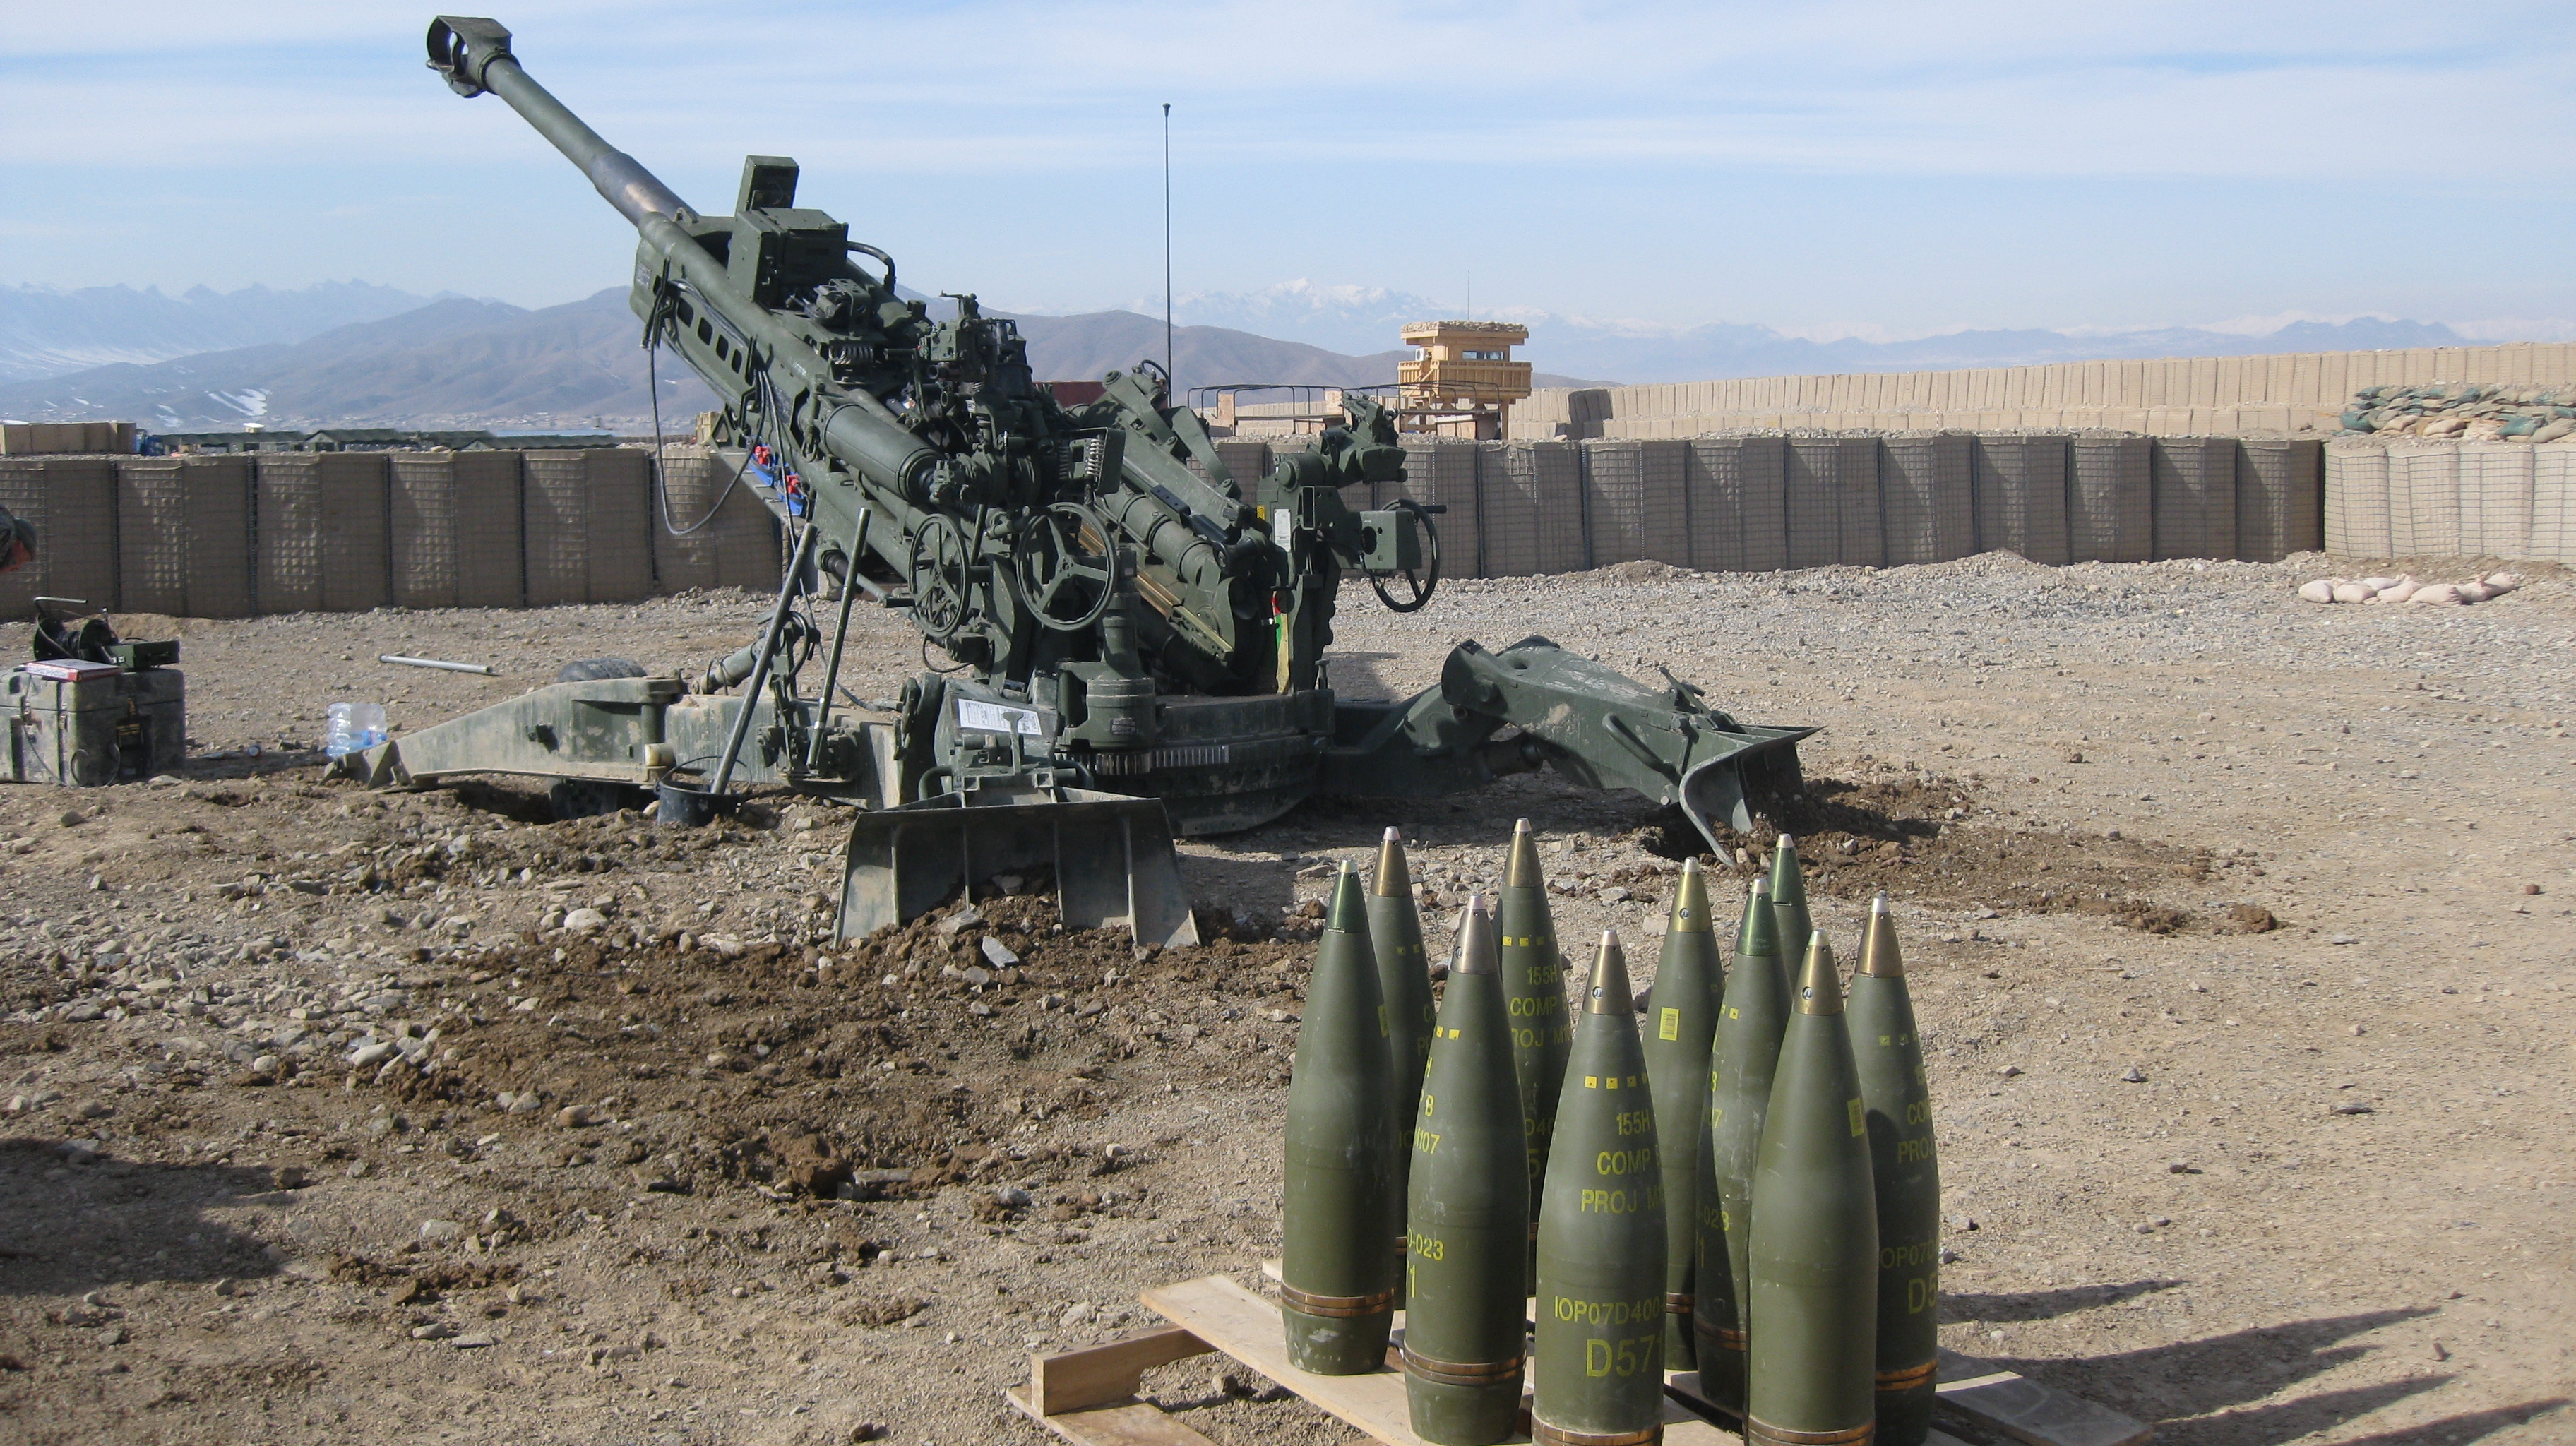 File:M777 and ammunition.jpg - Wikimedia Commons